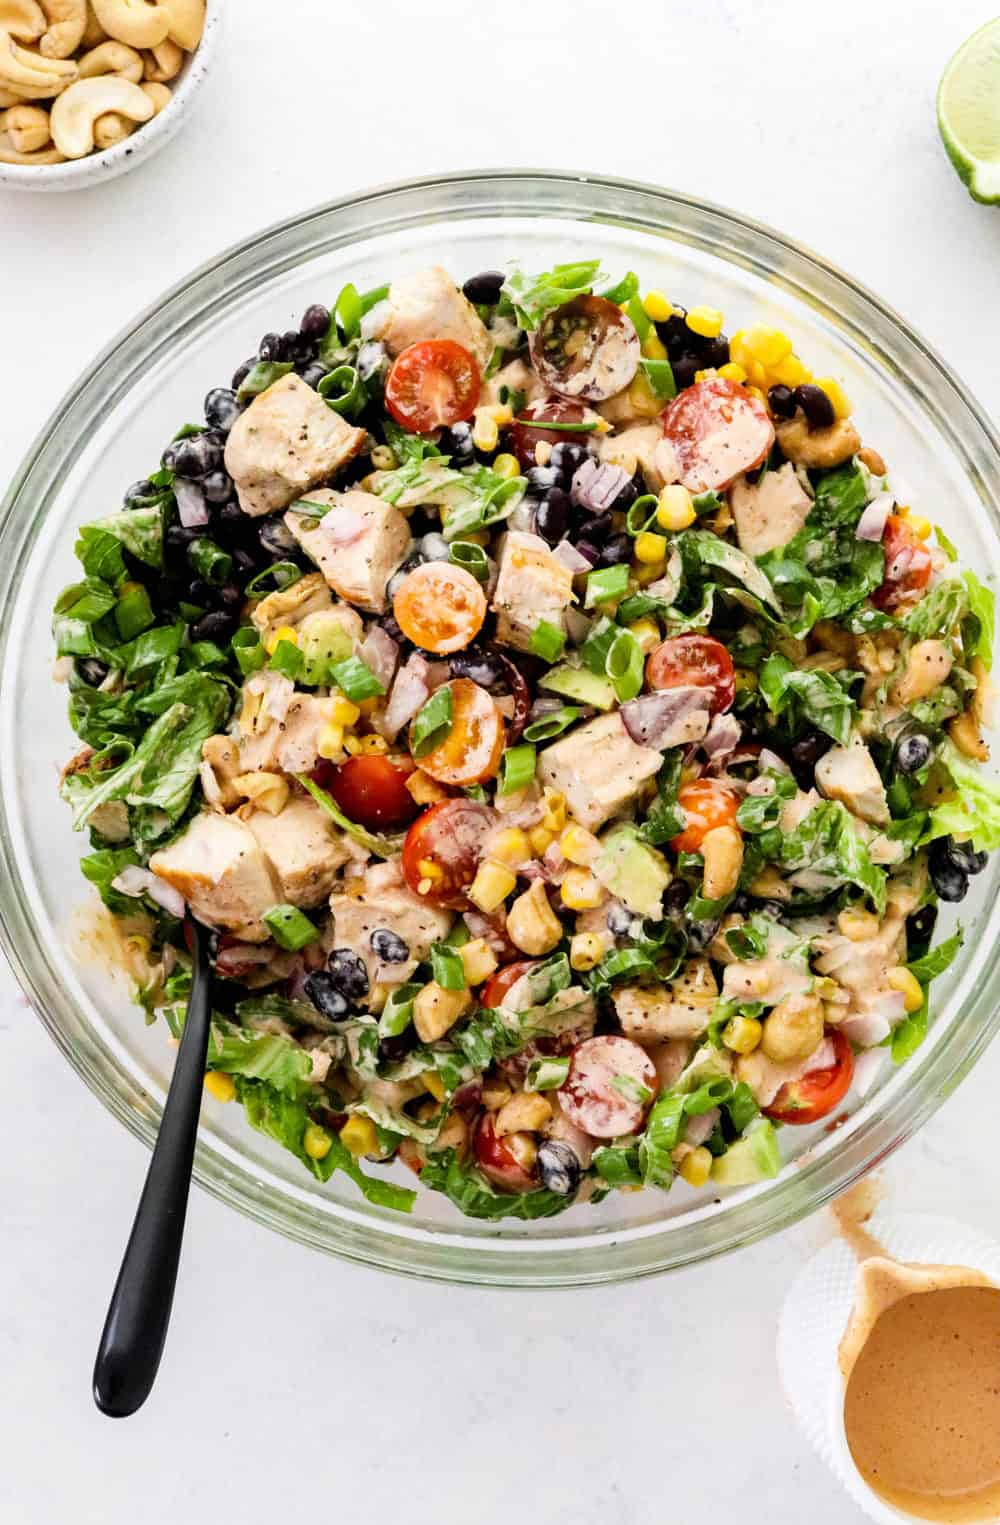 Round glass bowl filled with creamy bbq chicken salad over torn green lettuce with a black spoon in the bowl and a white pouring container with orange dressing in front of it.